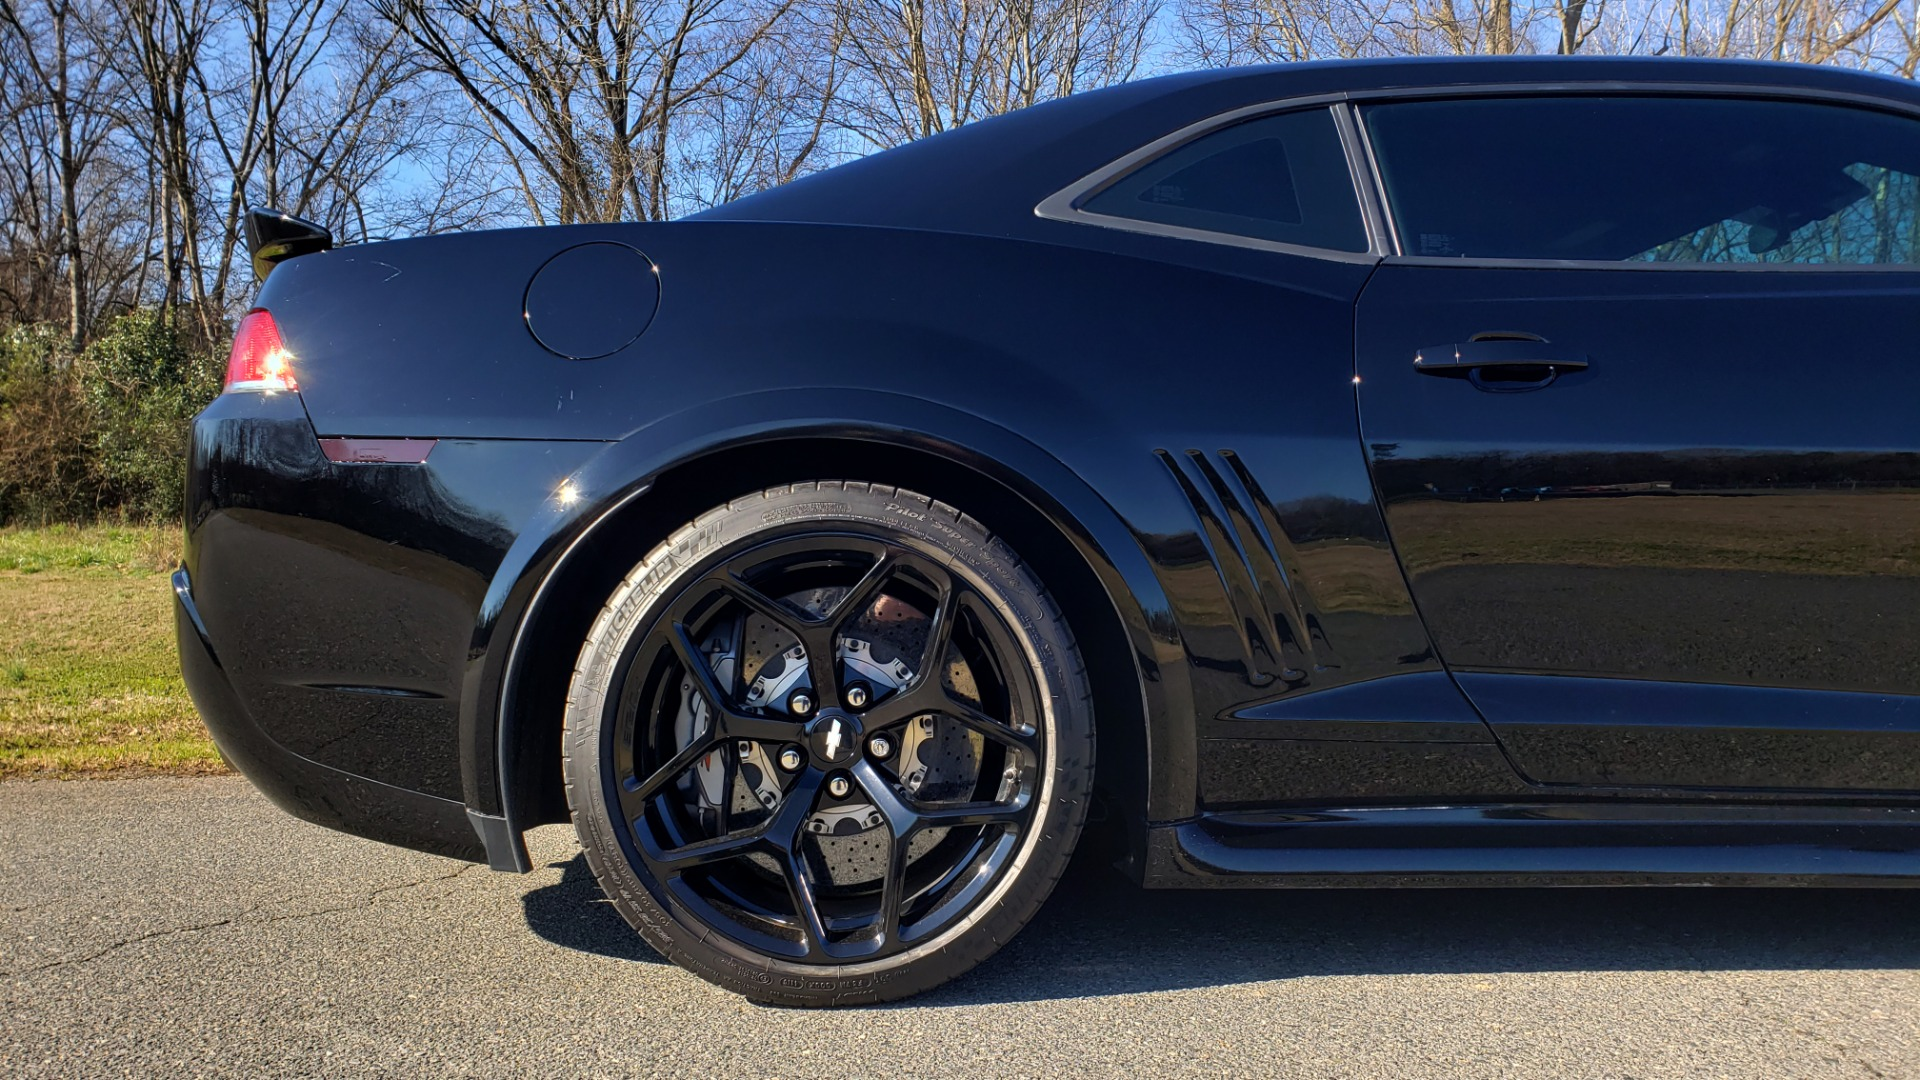 Used 2014 Chevrolet CAMARO Z/28 / 427 7.0L V8 505HP / RADIO / AIR CONDITIONING for sale Sold at Formula Imports in Charlotte NC 28227 33